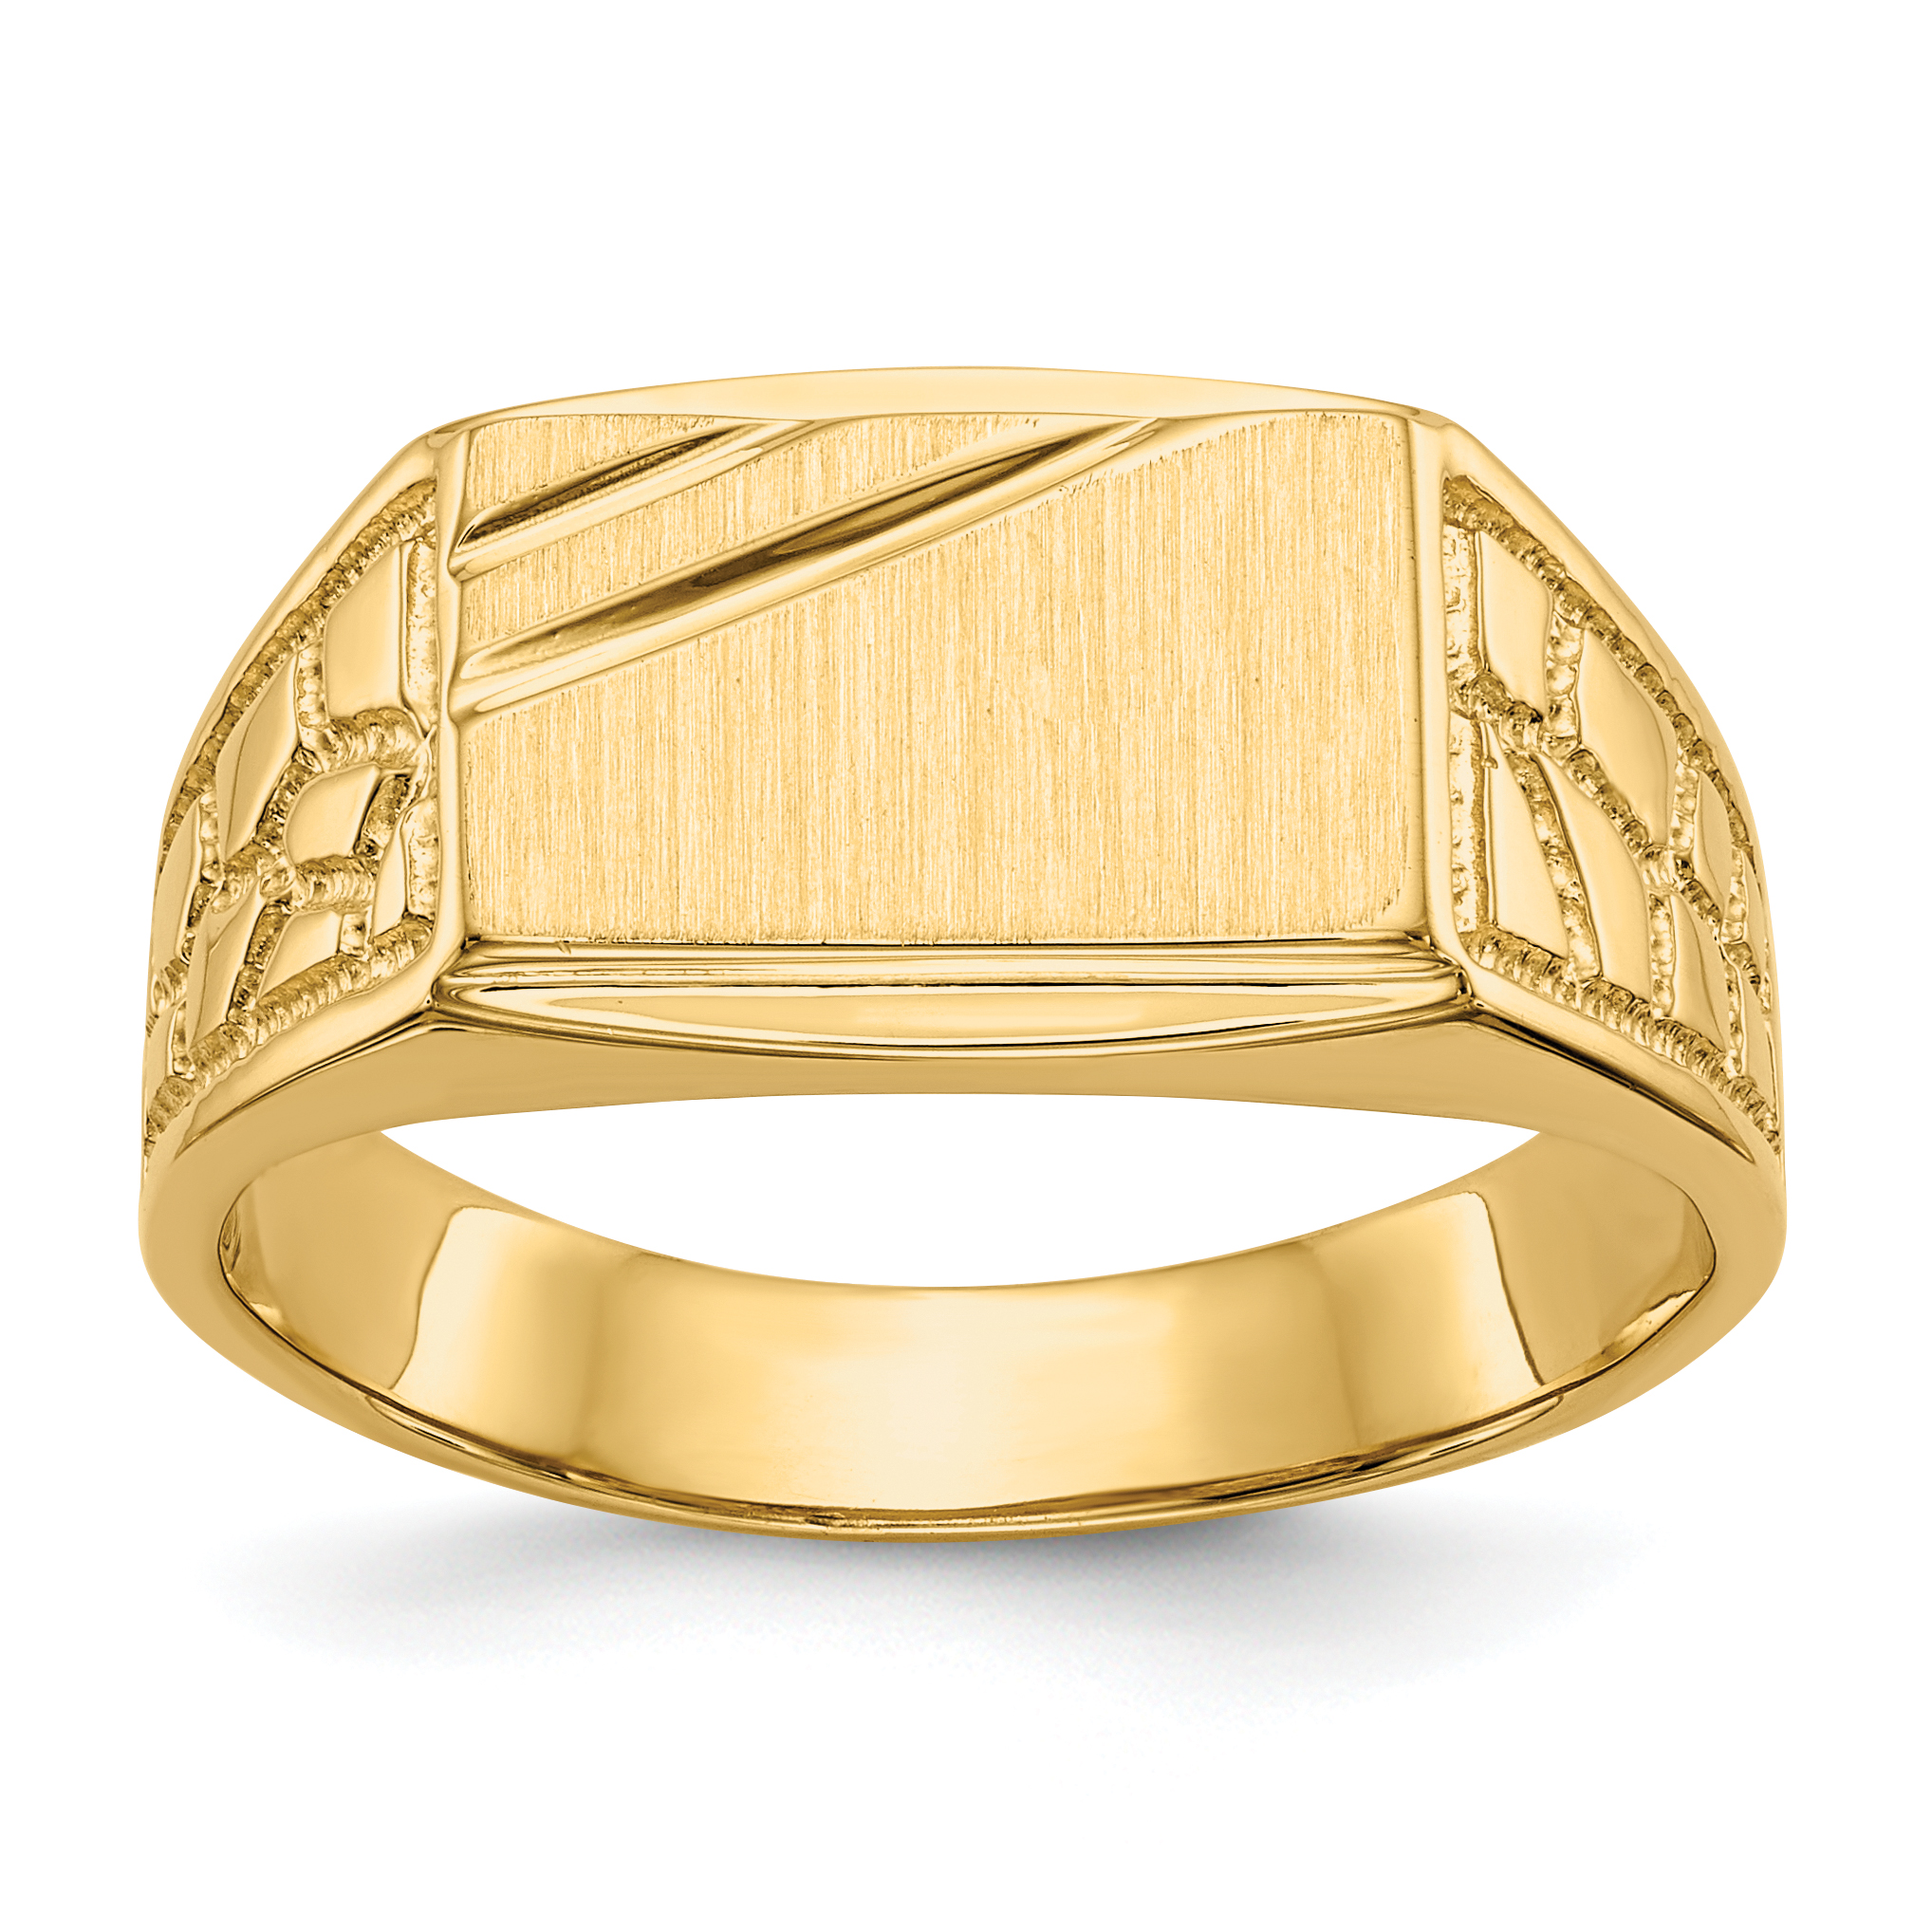 14k Yellow Gold Mens Signet Band Ring Size 10.00 Man Fine Jewelry Gift For Dad Mens For Him - image 5 de 5